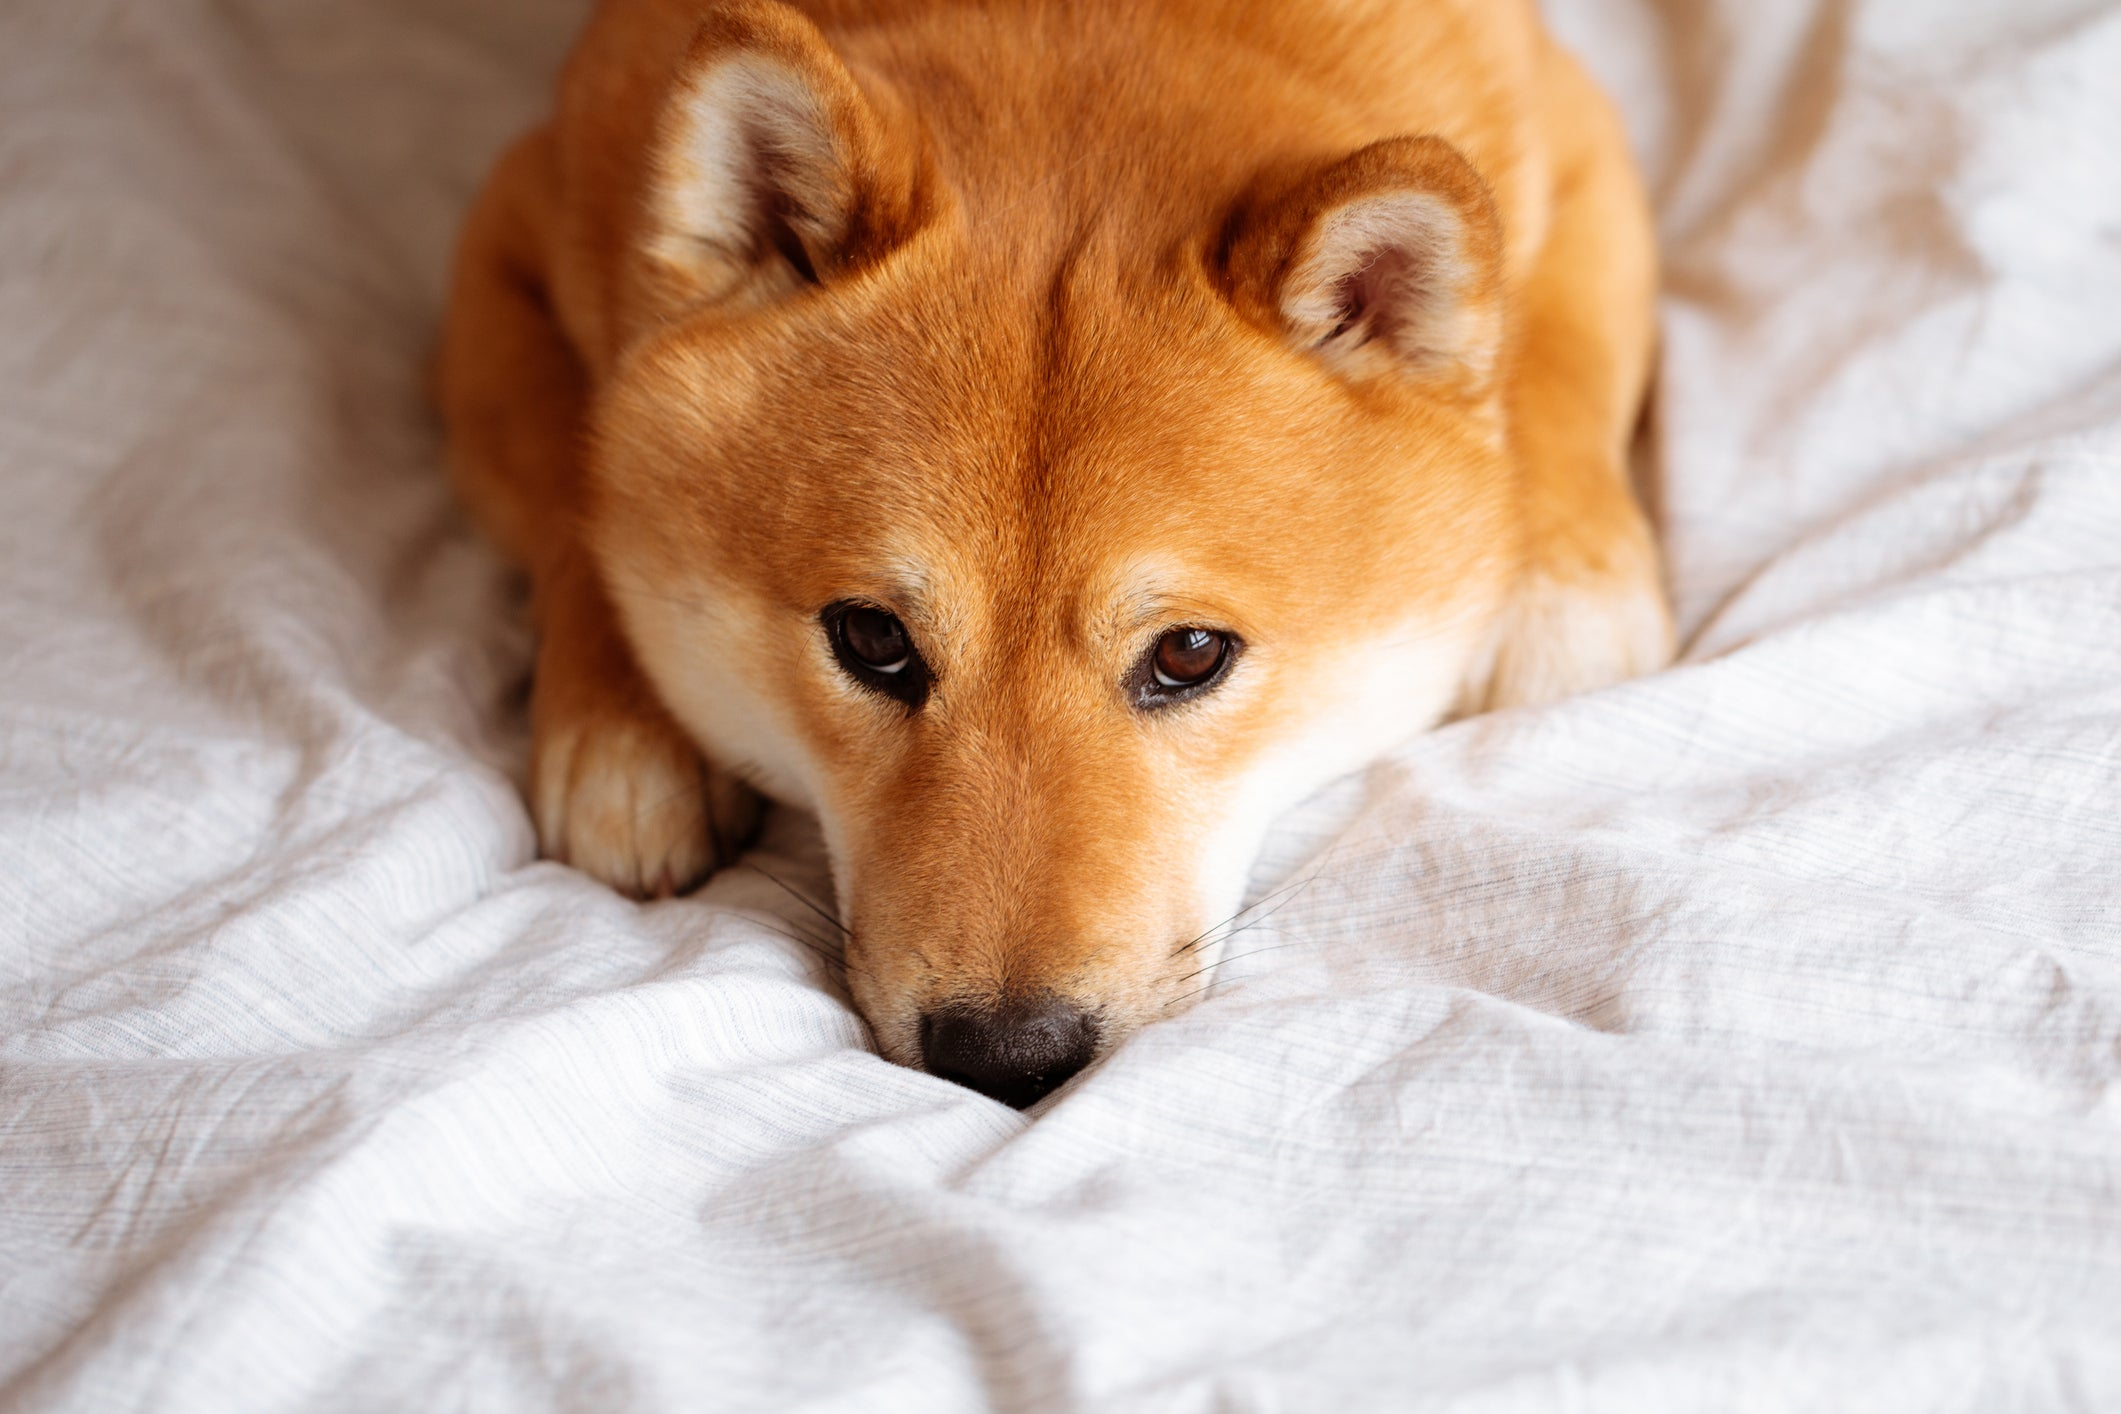 Dogecoin Is Up 1,000% in a Month. Is It a Good Investment Yet?